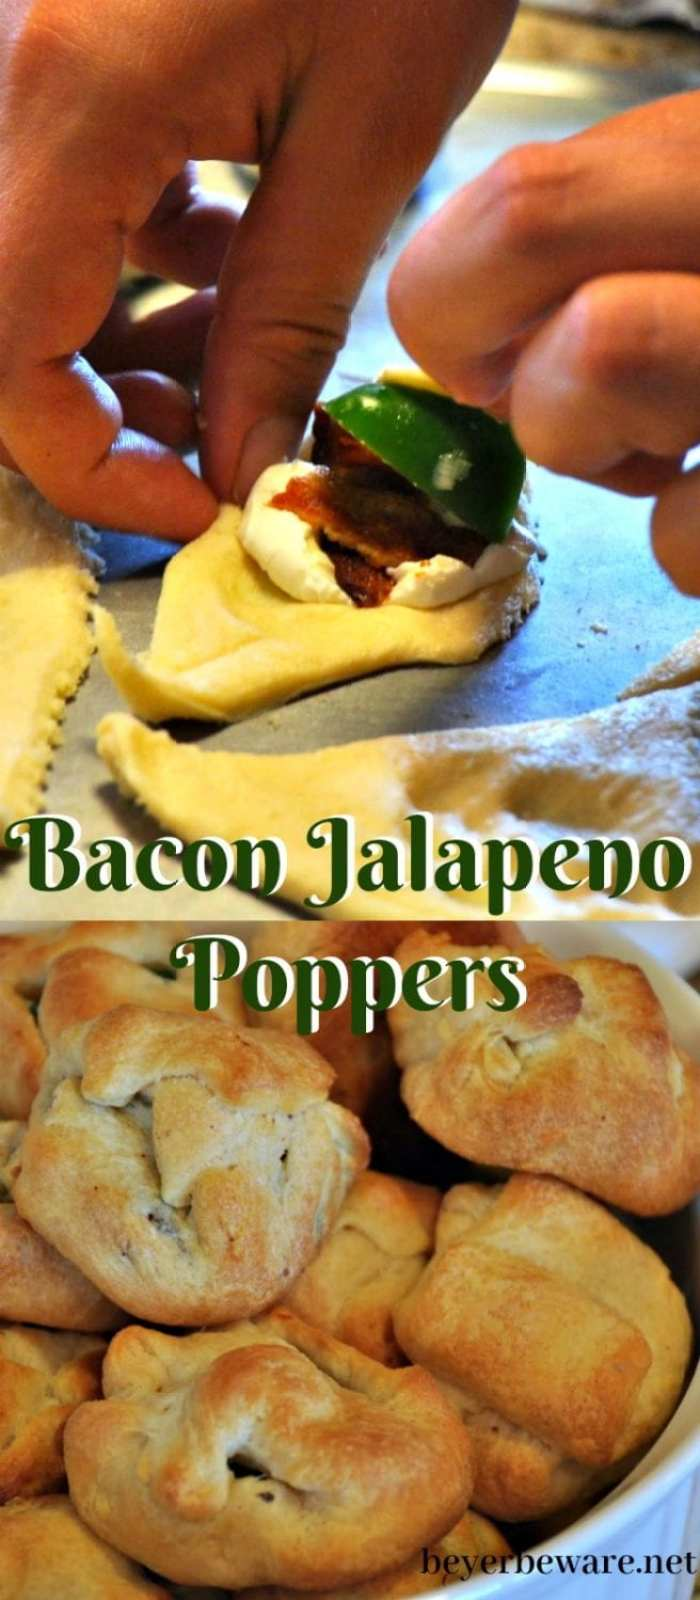 Four ingredients will get you a quick bacon jalapeno poppers recipe leaving everyone fighting over the last one and you wishing you made double.